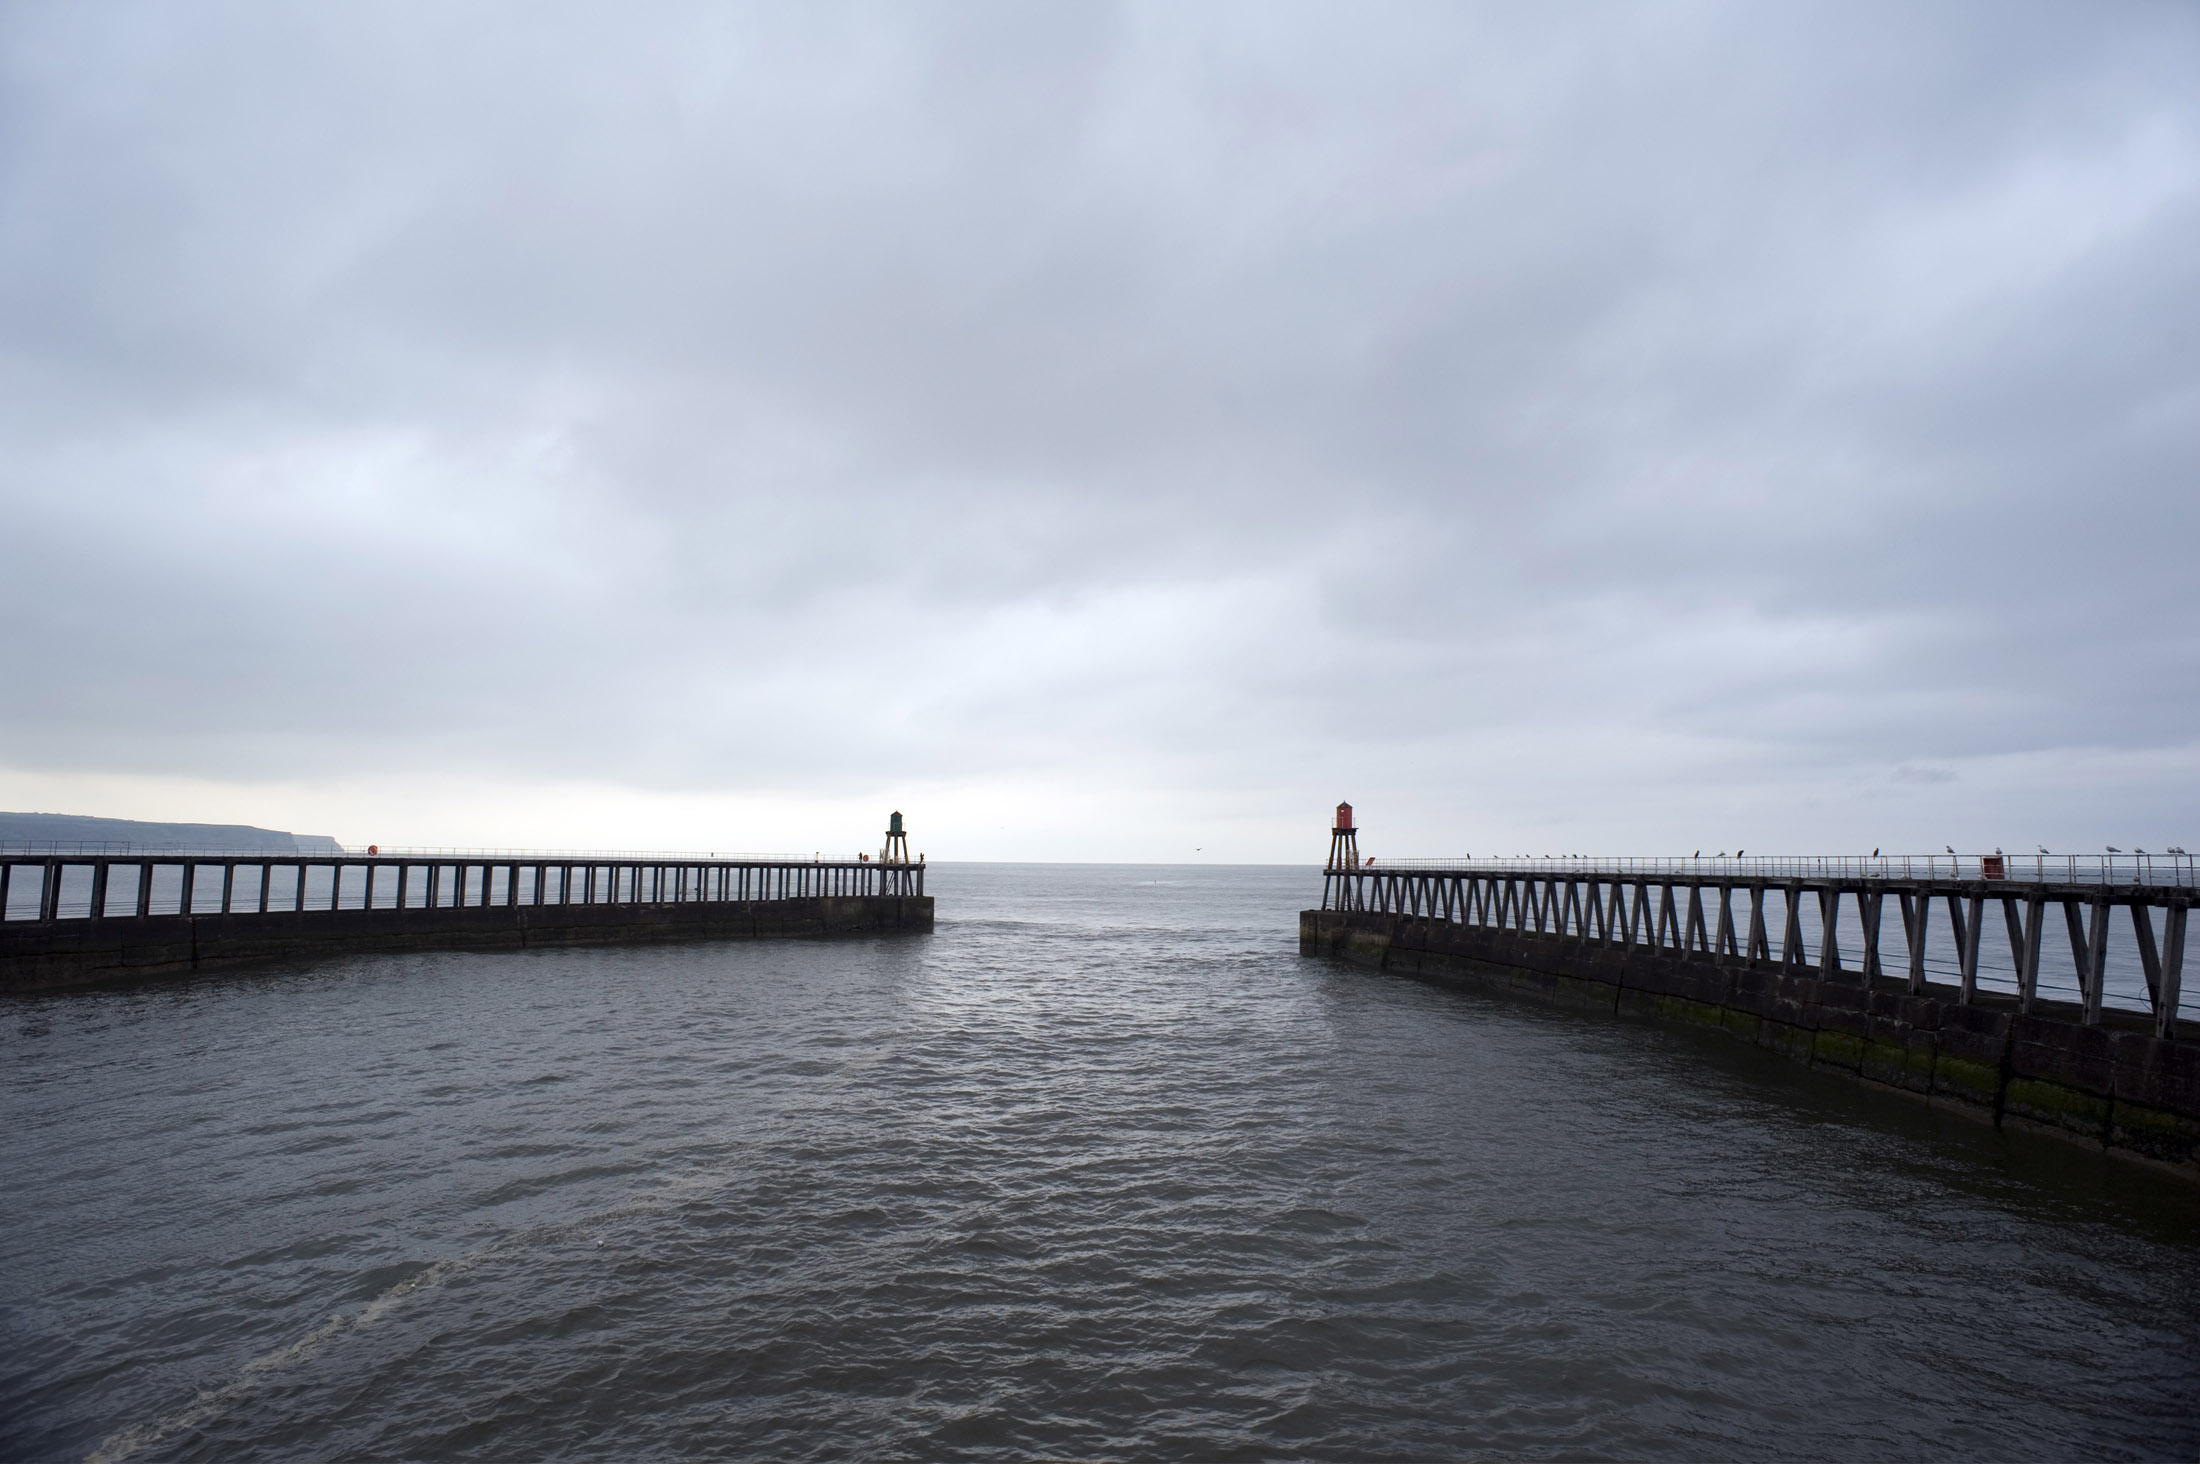 the two large breakwaters on the end of the harbour piers at whitby